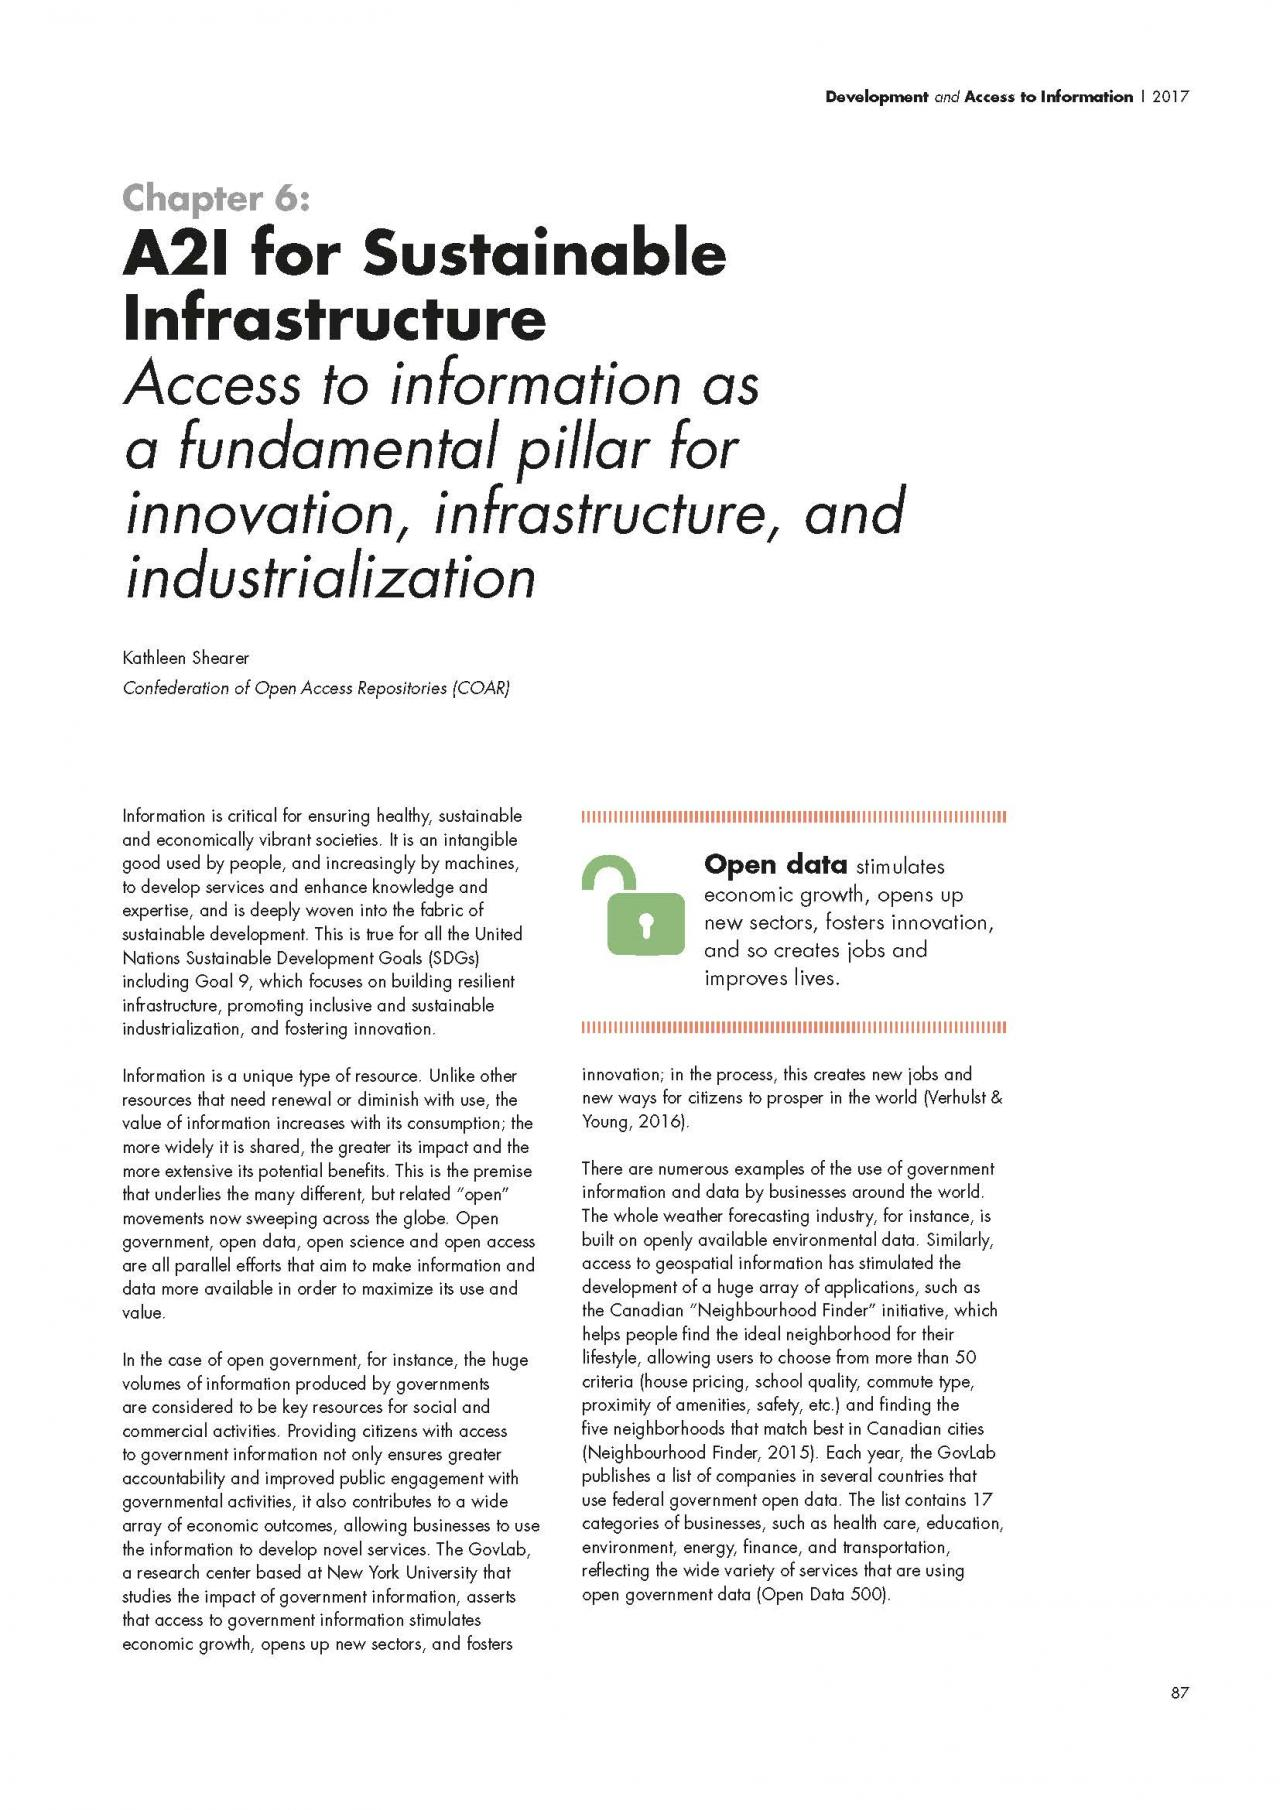 Chapter 6: A2I for Sustainable Infrastructure: Access to information as a fundamental pillar for innovation, infrastructure, and industrialization